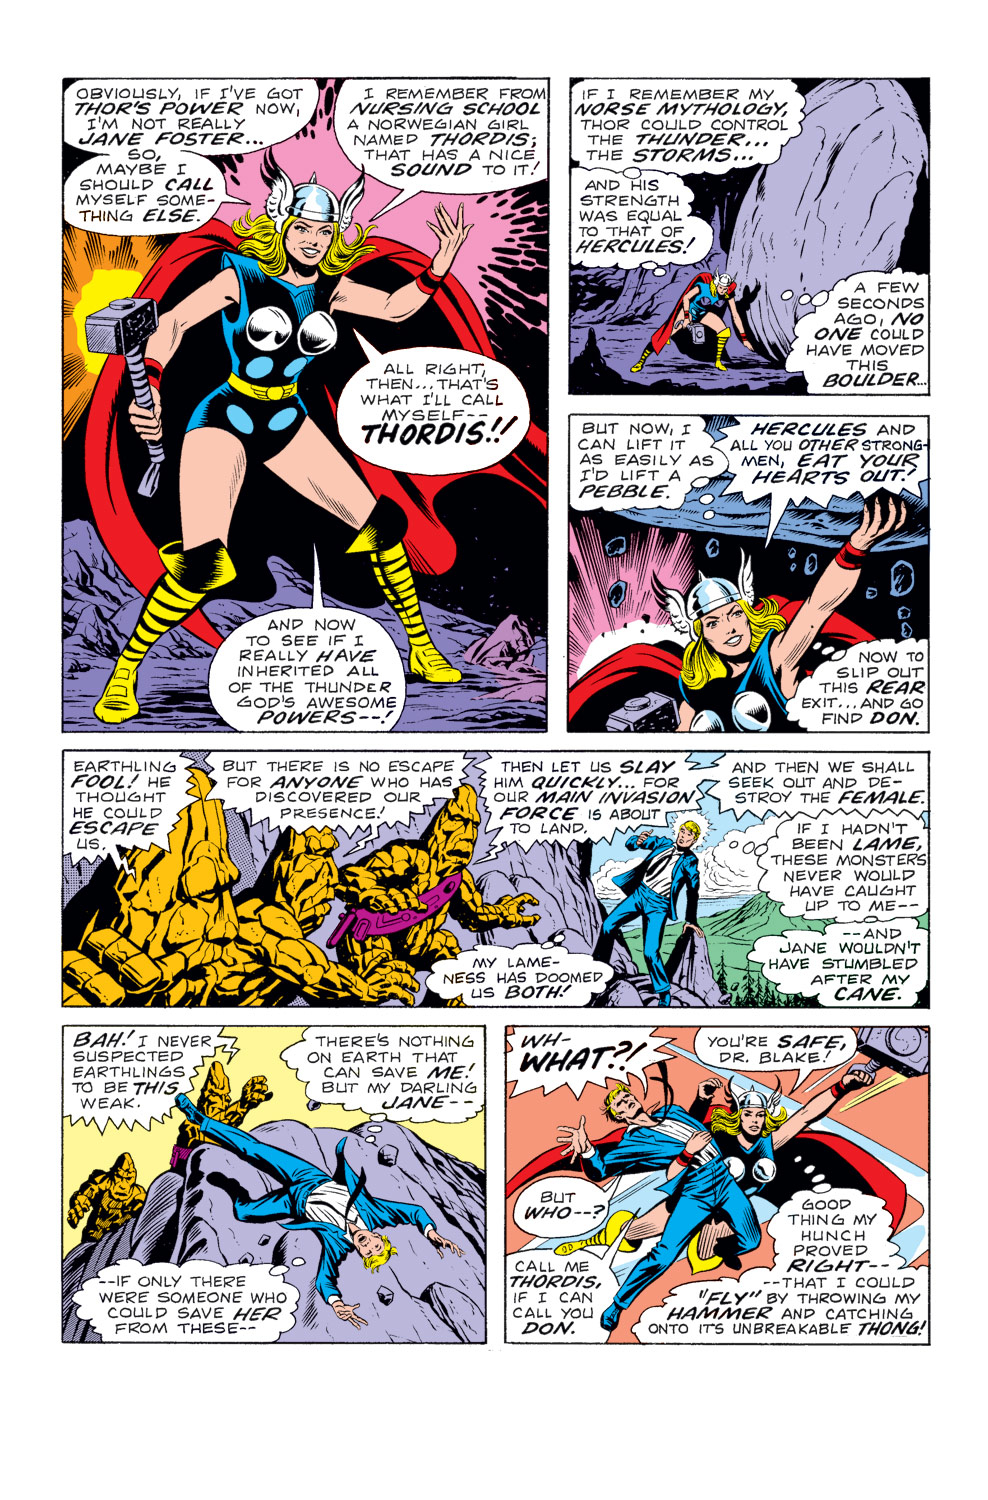 scans daily what if 10 jane foster had the hammer of thor